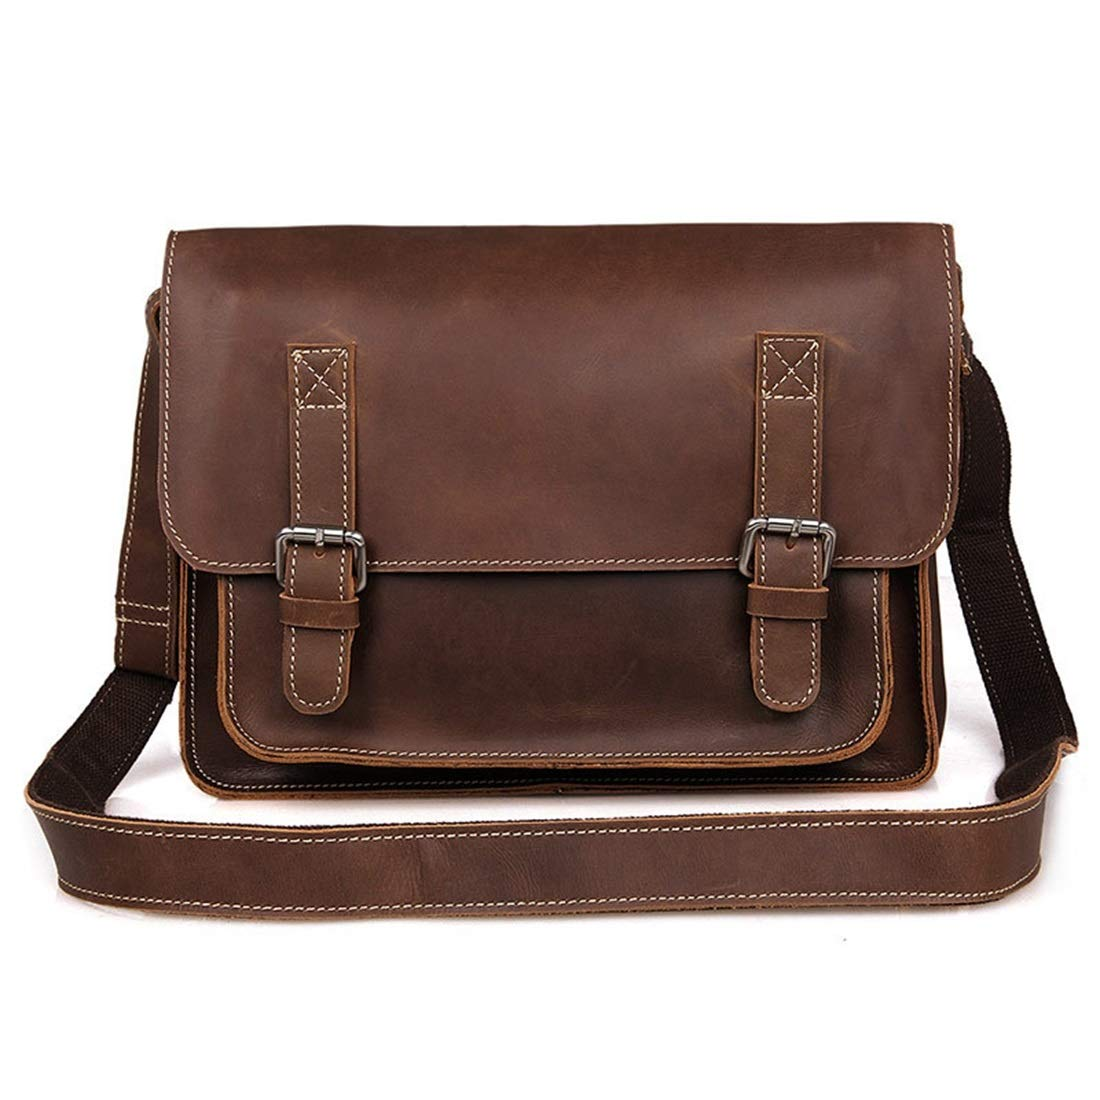 KRPENRIO Mens Messenger Shoulder Bag Vintage Leather Briefcase Crossbody Day Bag for School and Work Color : Dark Brown